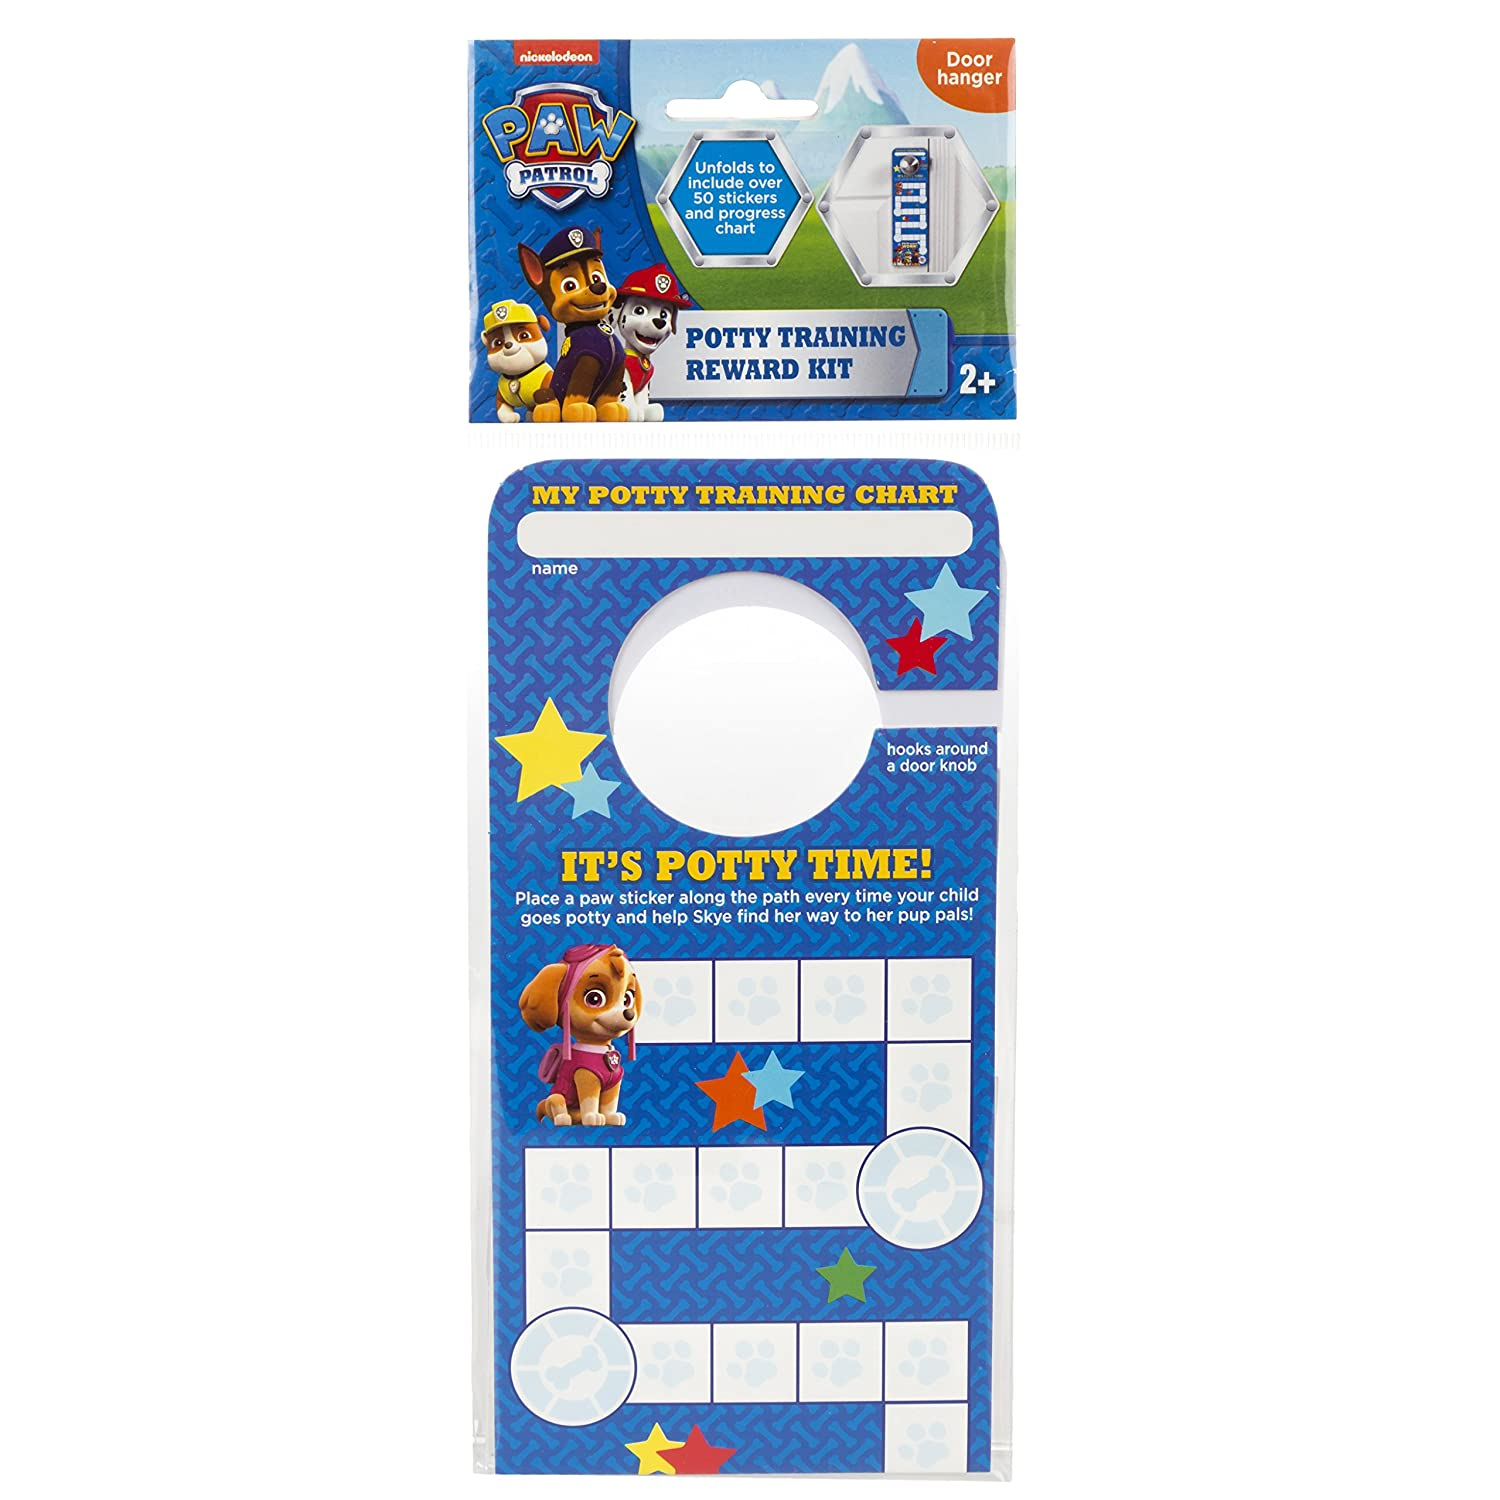 com nickelodeon paw patrol potty training reward kit com nickelodeon paw patrol potty training reward kit door hang version baby